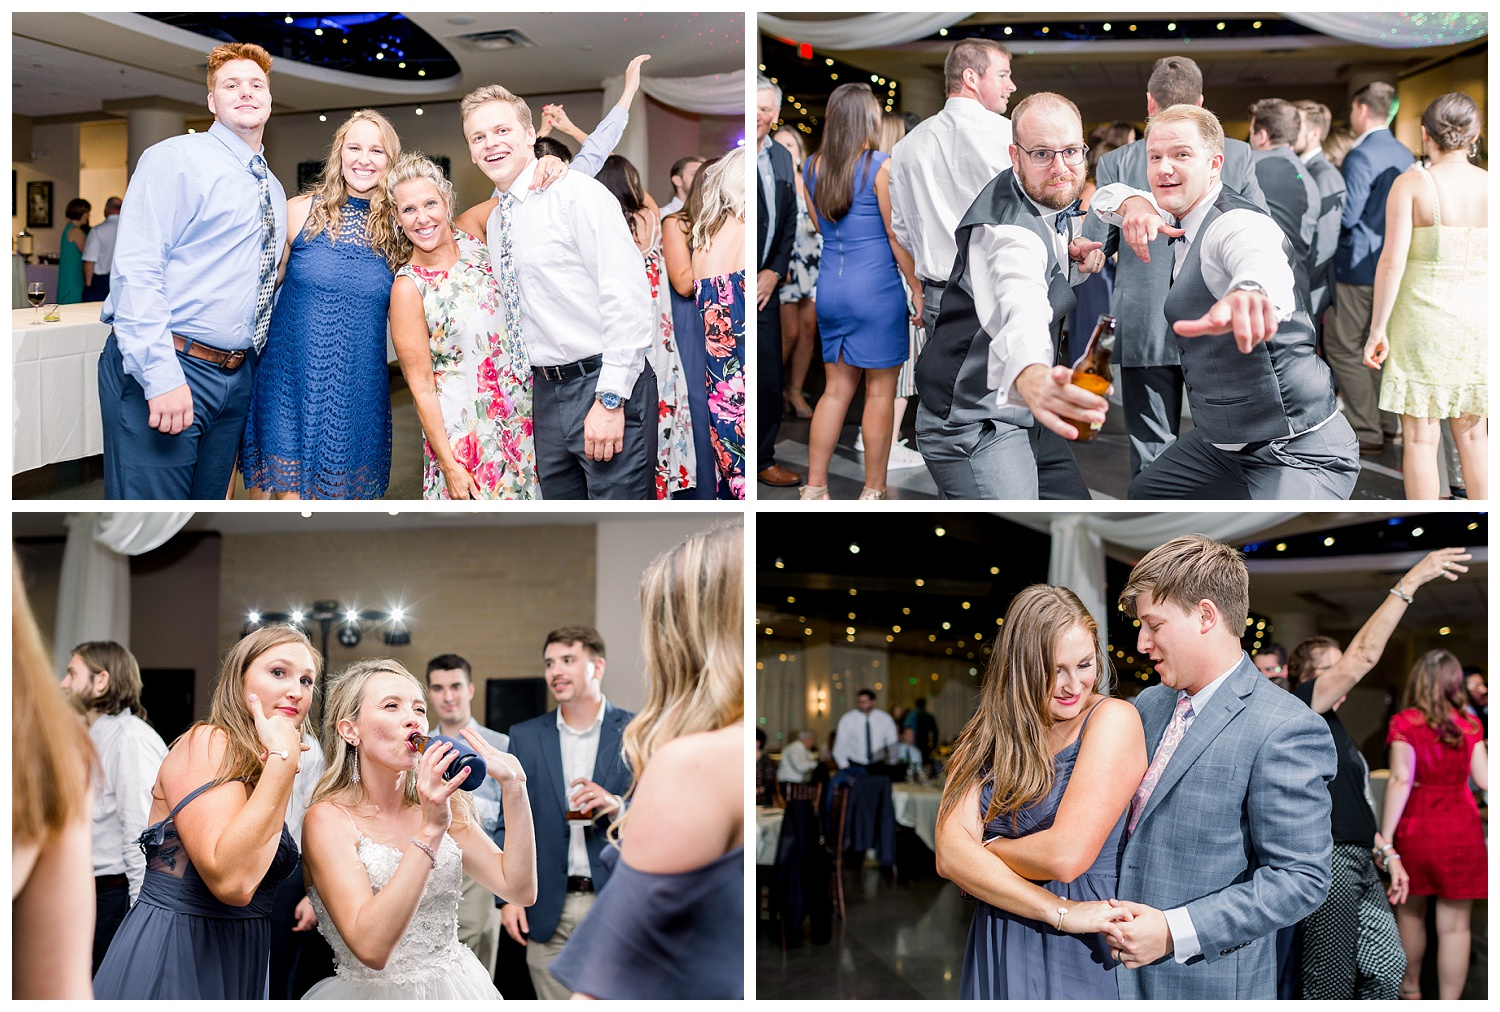 KC-Wedding-Photographer-Venue-Leawood-B+A-0803-Elizabeth-Ladean-Photography_photo_9261.jpg